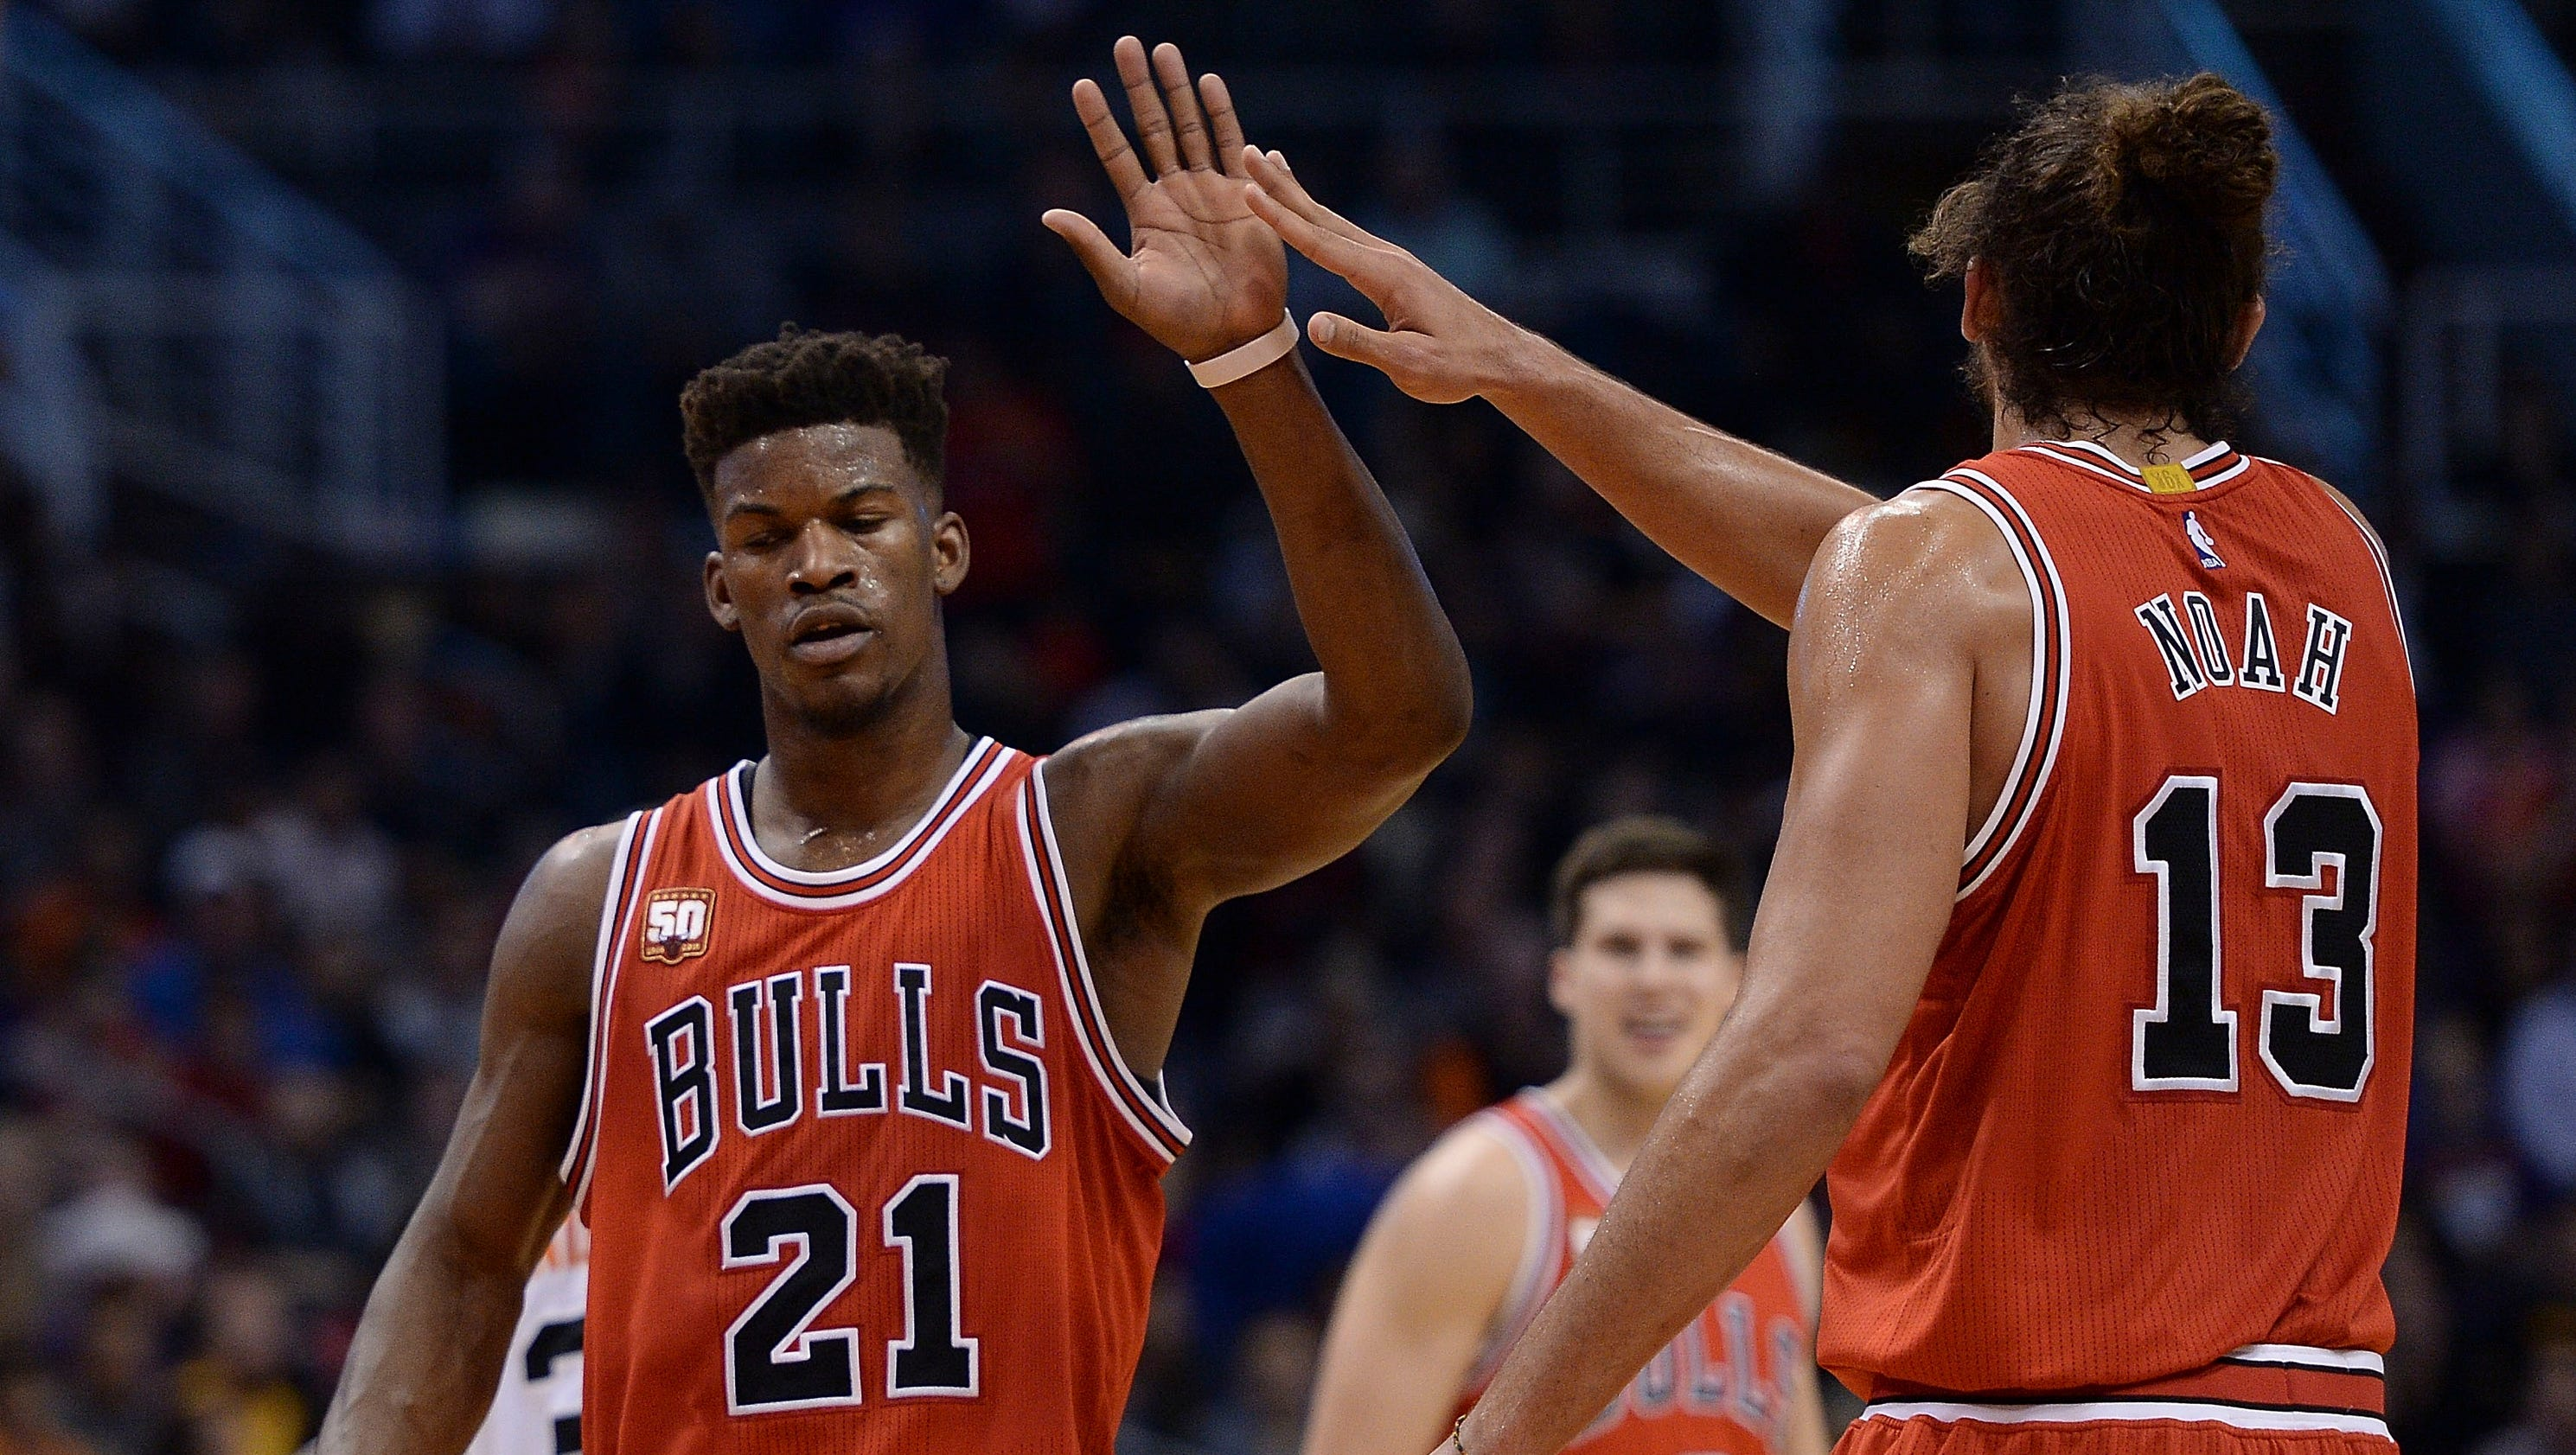 Jimmy Butler steps up to lead Bulls past Suns without Derrick Rose